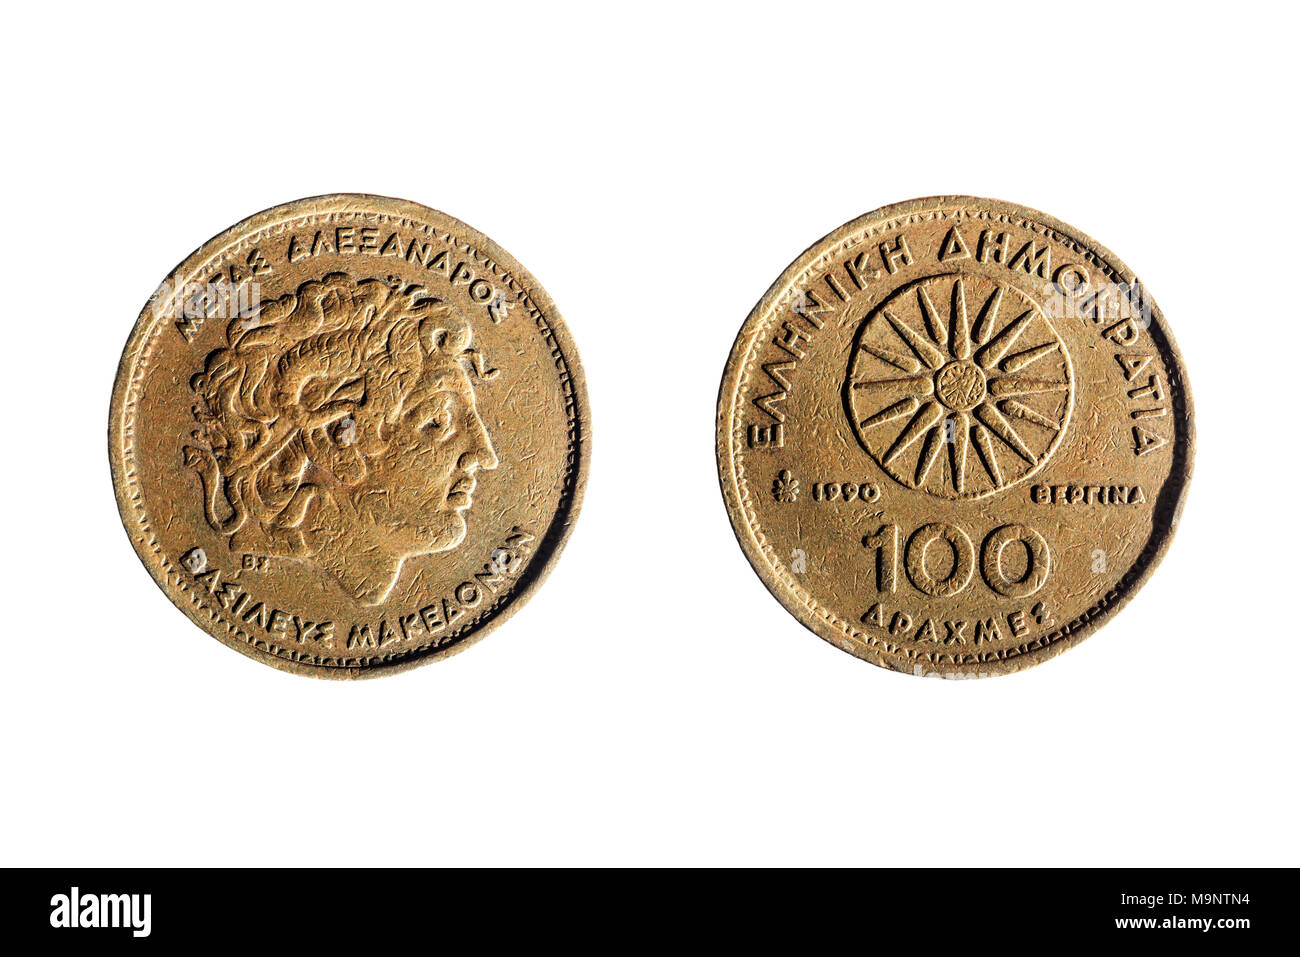 front and back of an old greek coin of a hundred drachmas isolated on white background - Stock Image